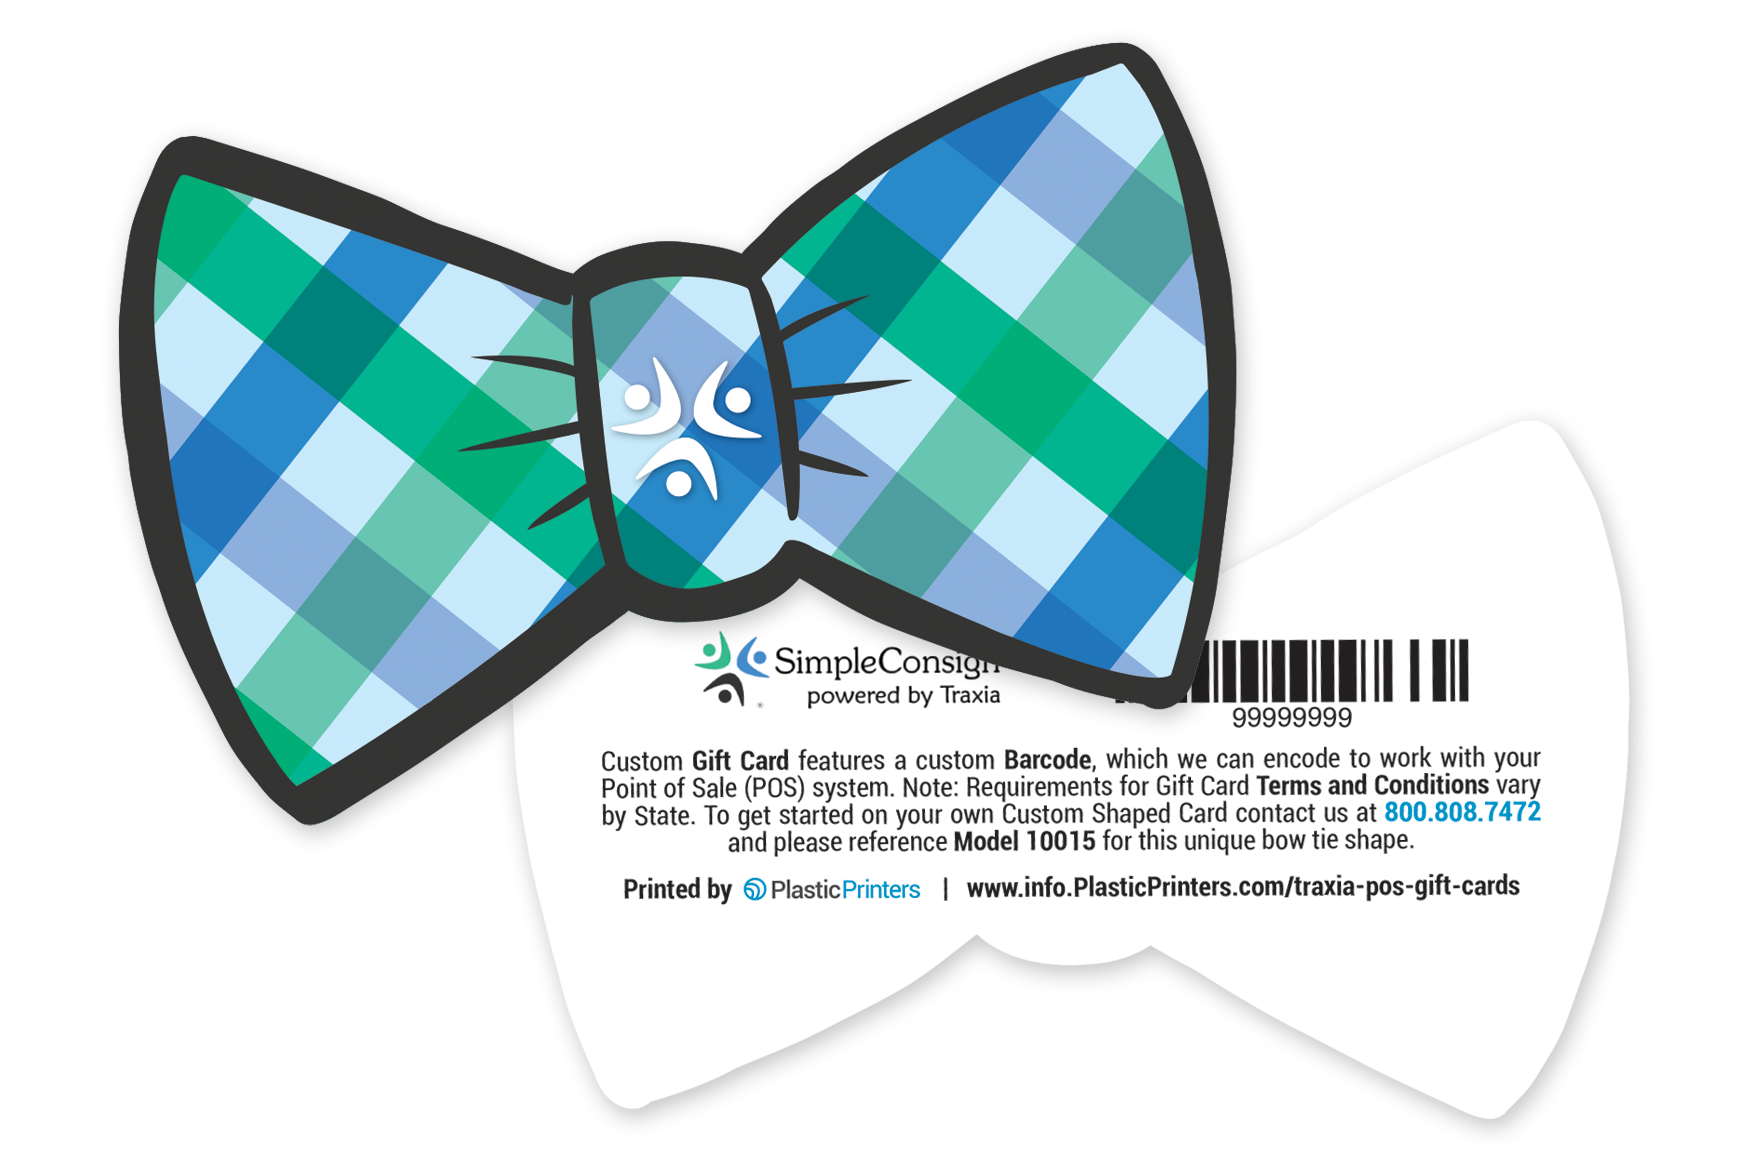 Bow Tie Shaped Gift Card for Simple Consign Powered by Traxia